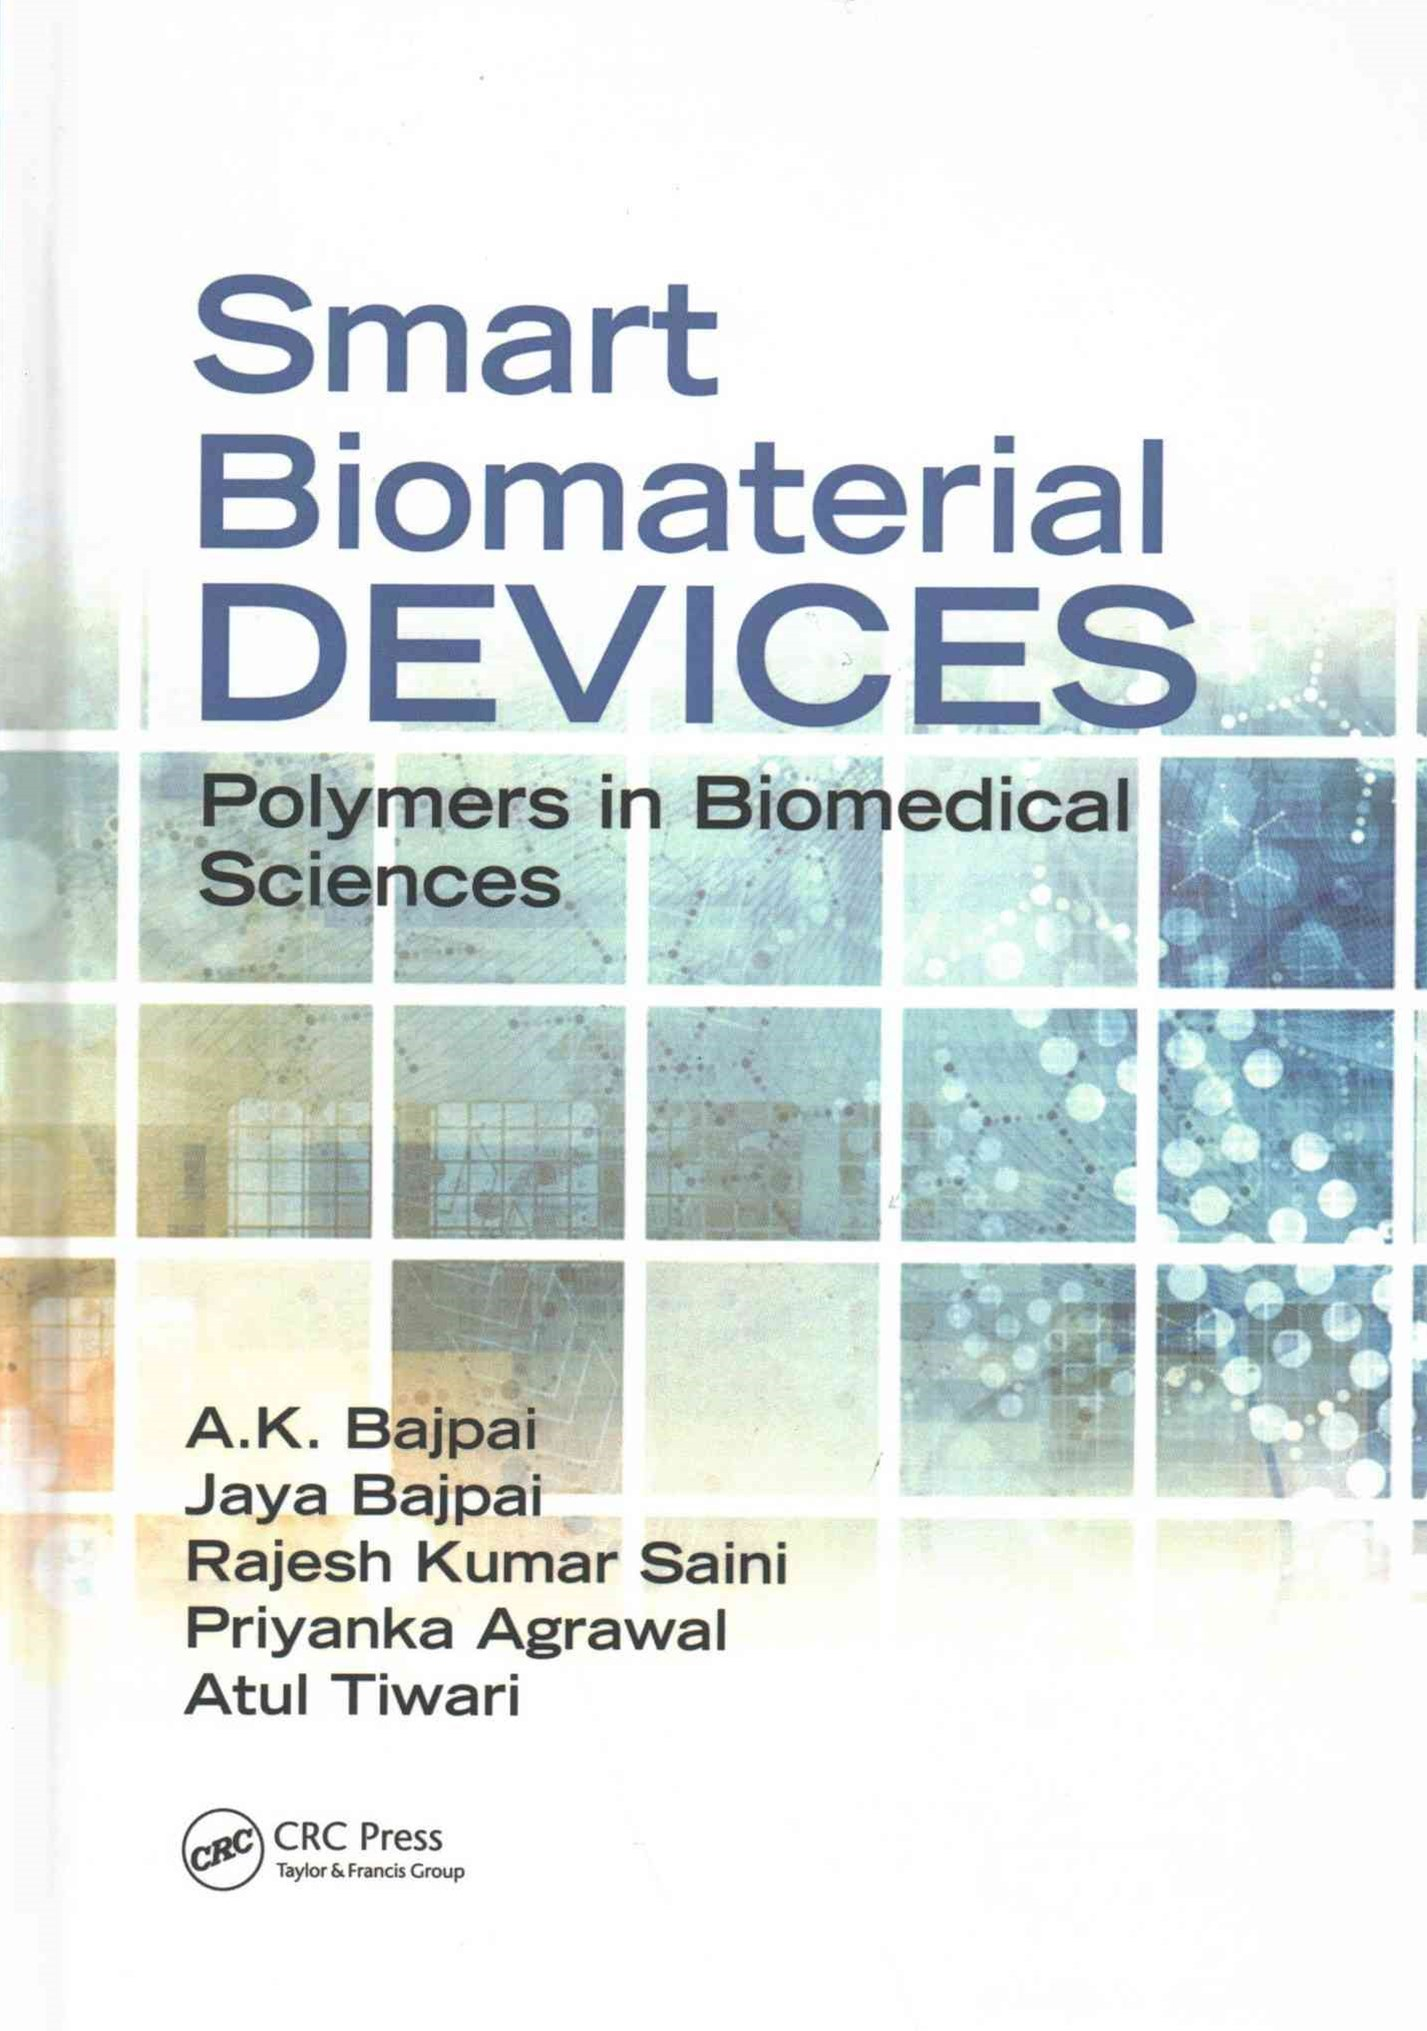 Smart Biomaterial Devices